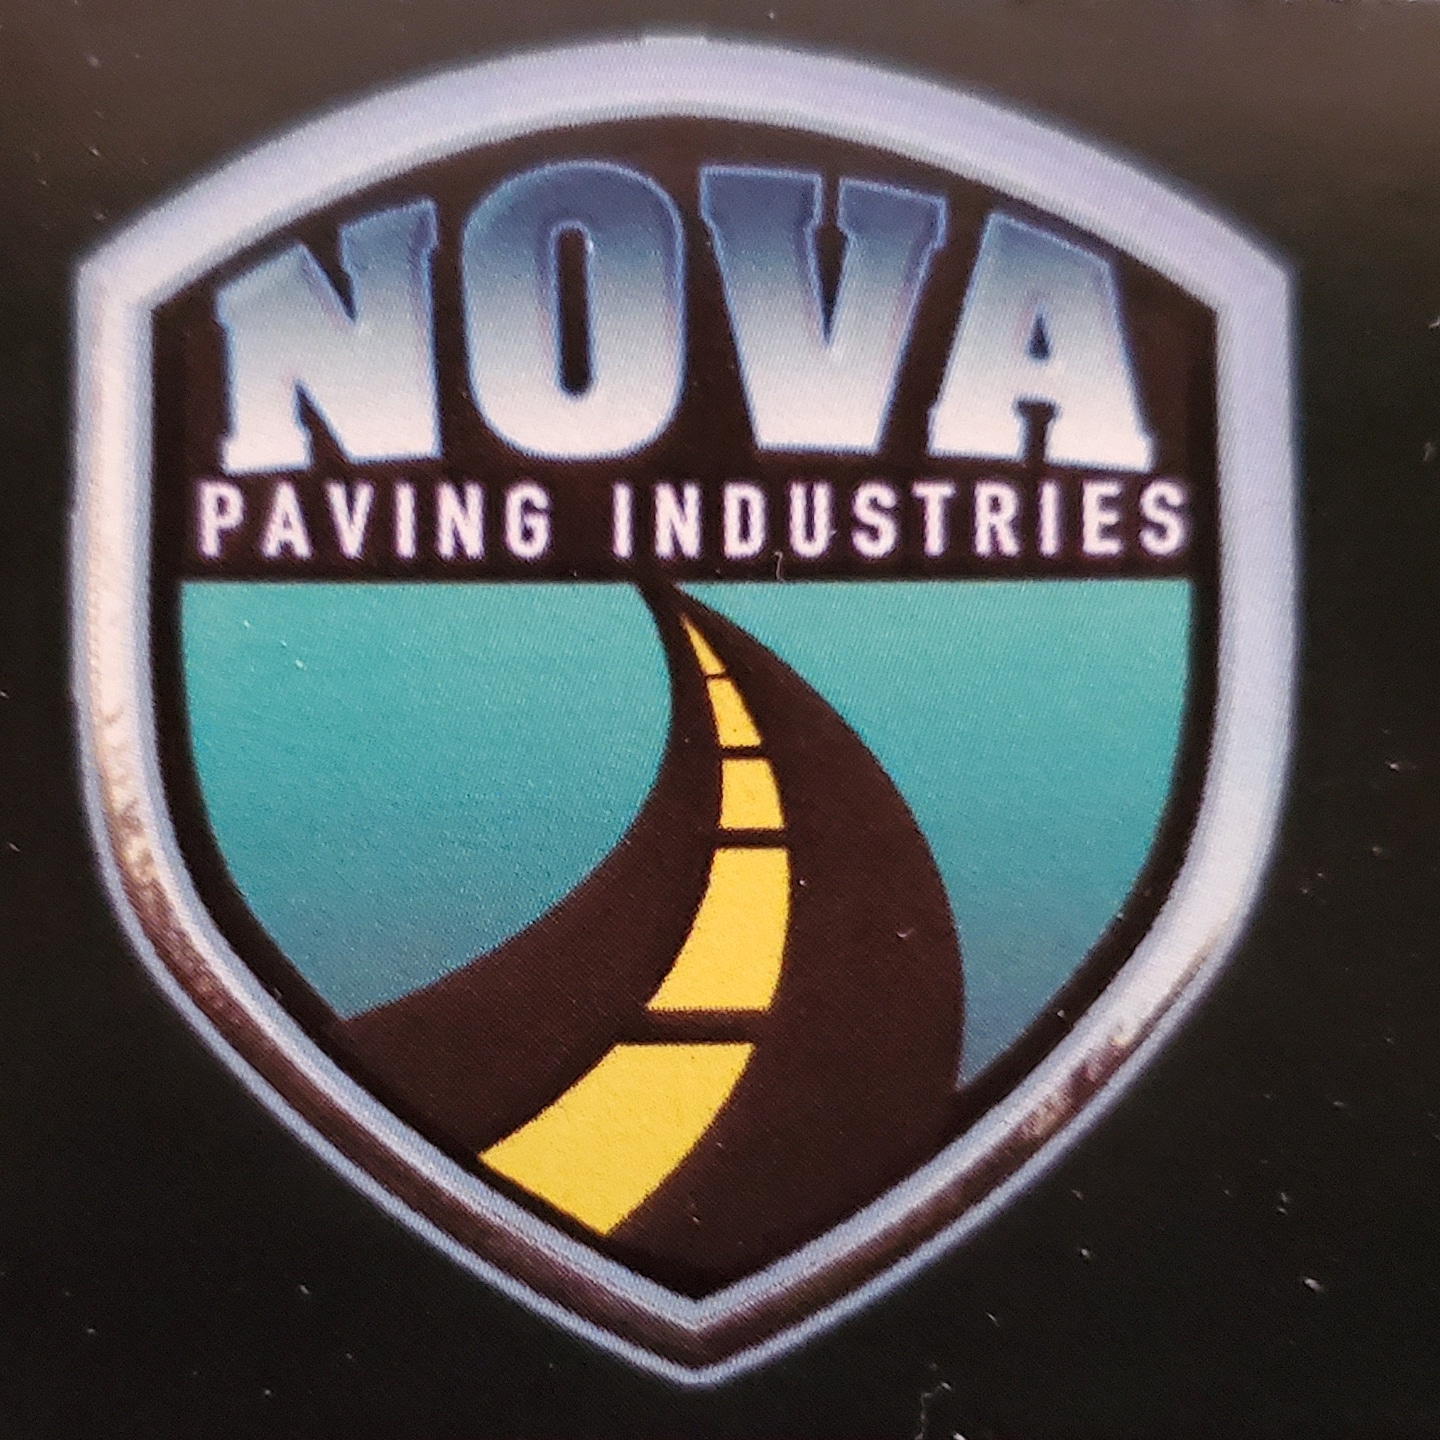 Nova Paving Industries